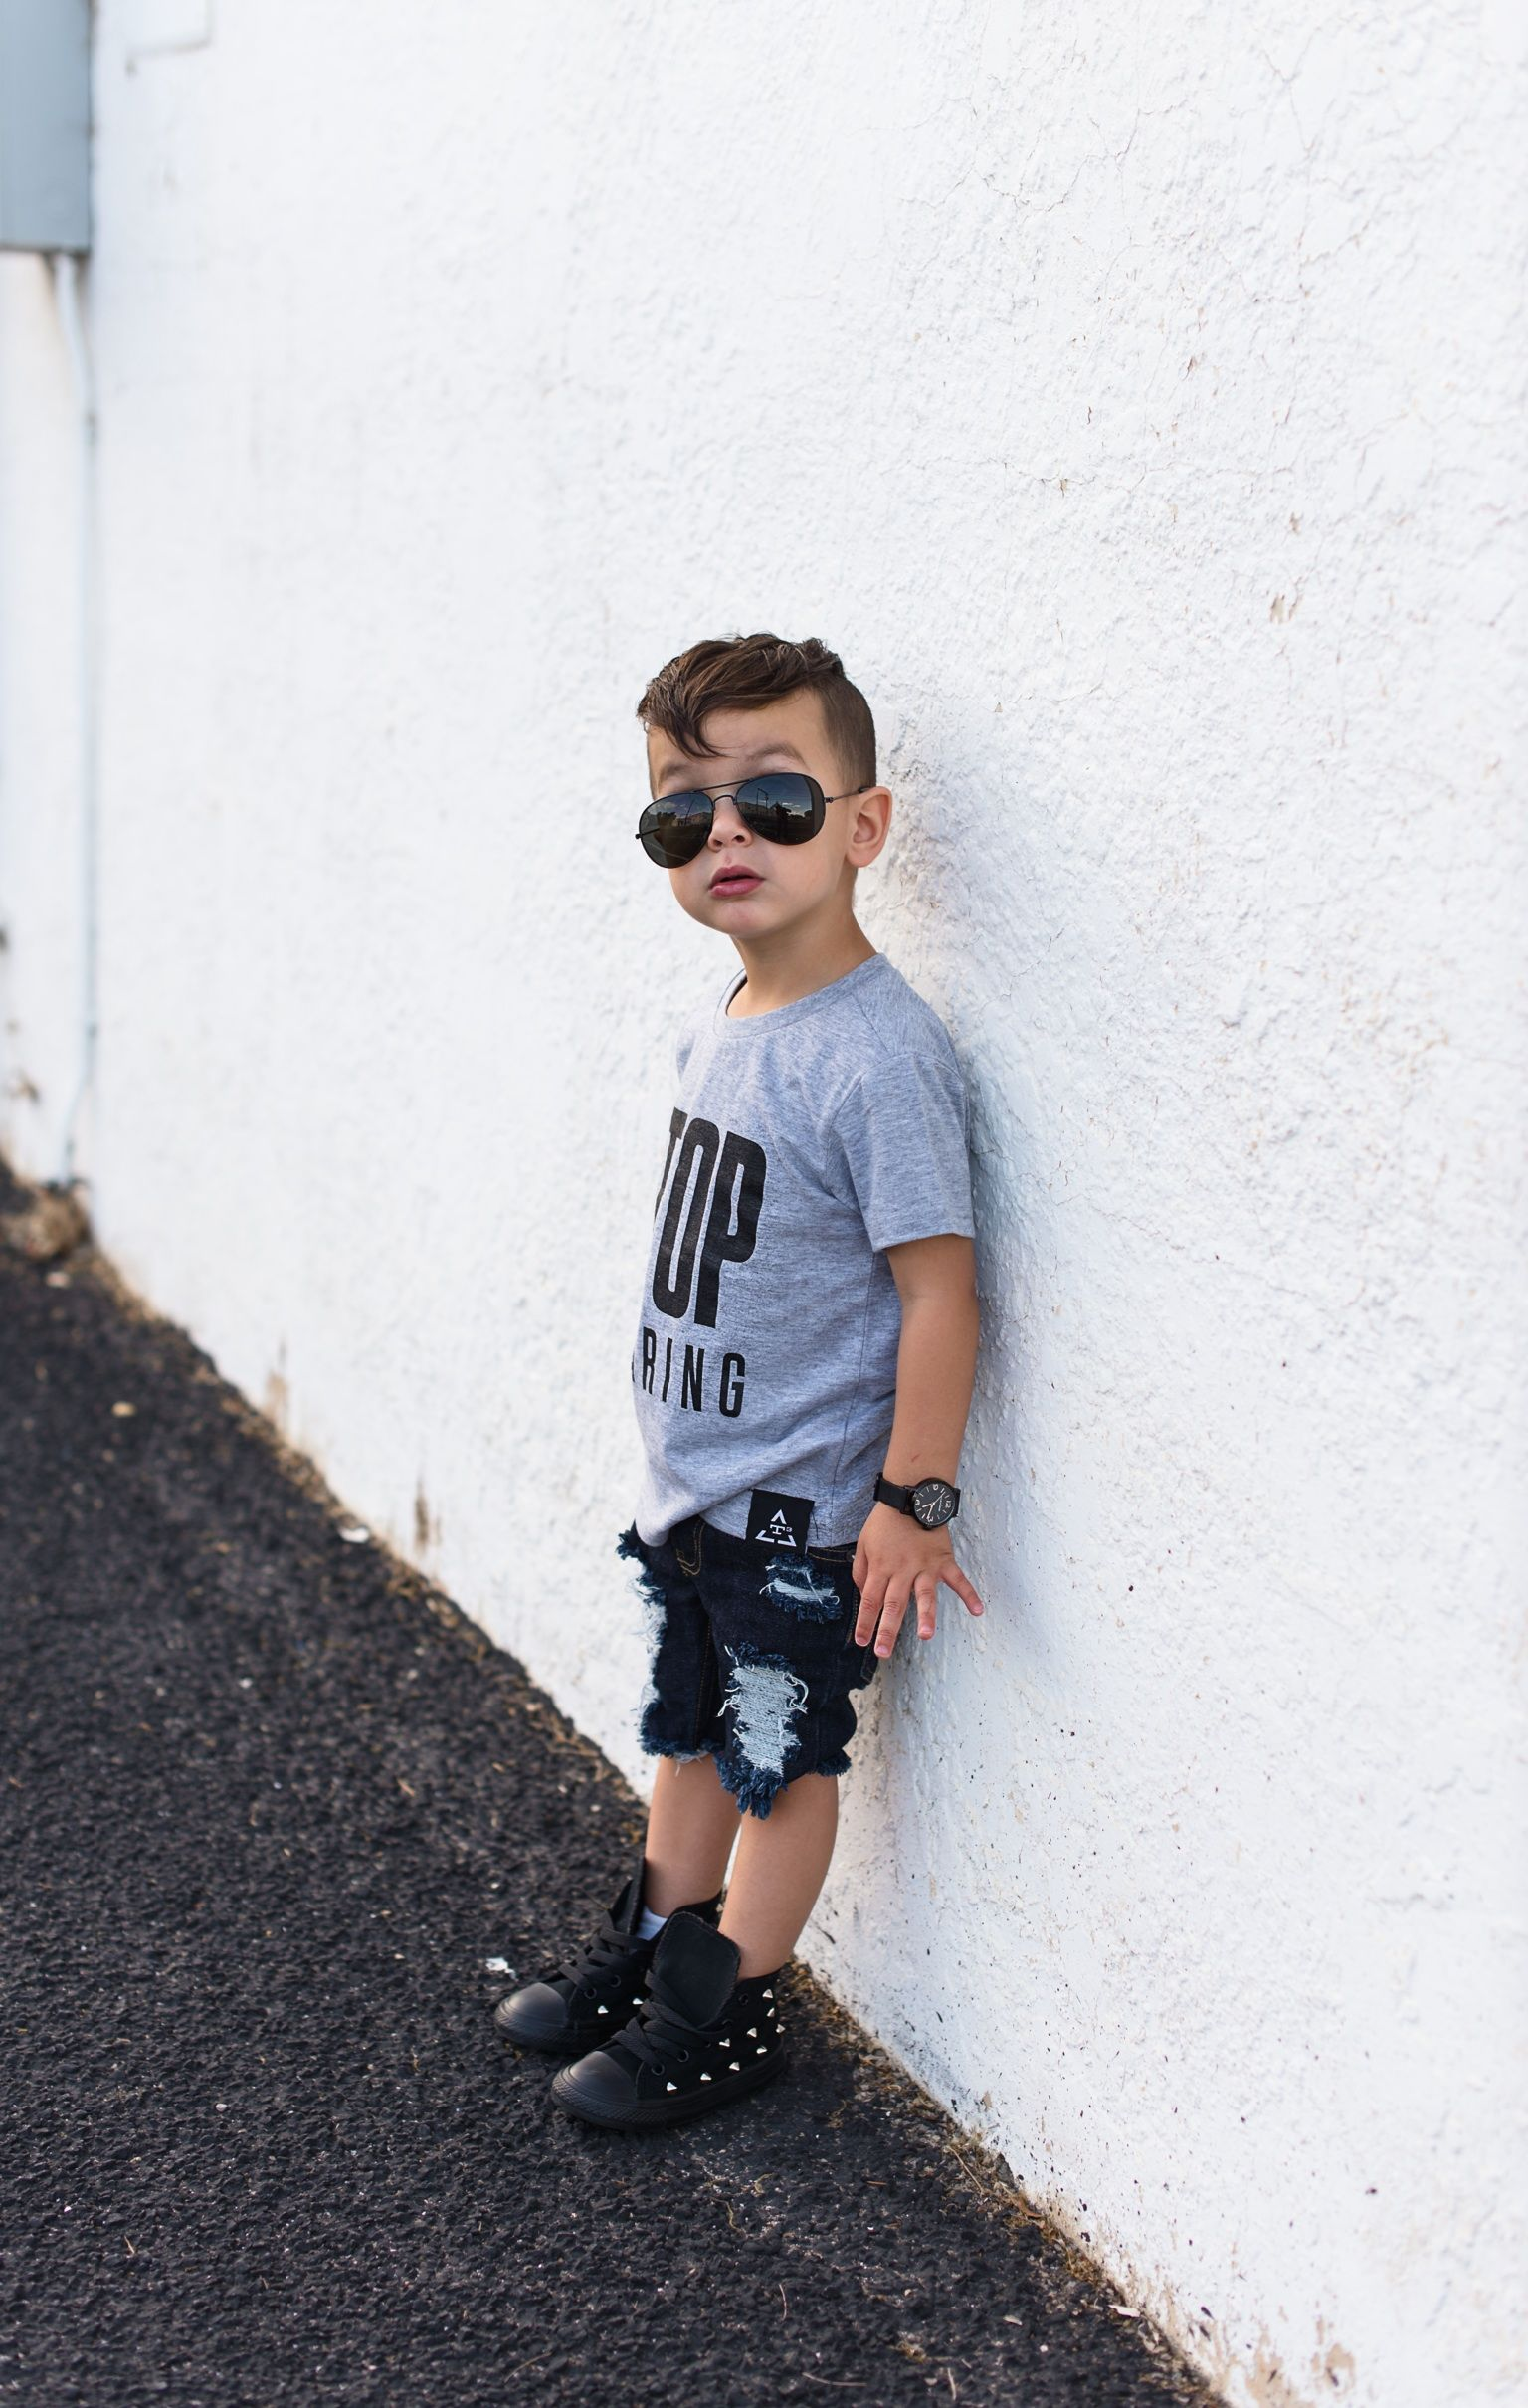 Fashion Toddler Boys Clothes Inspiration Cool Edgy Haircut Hairstyle